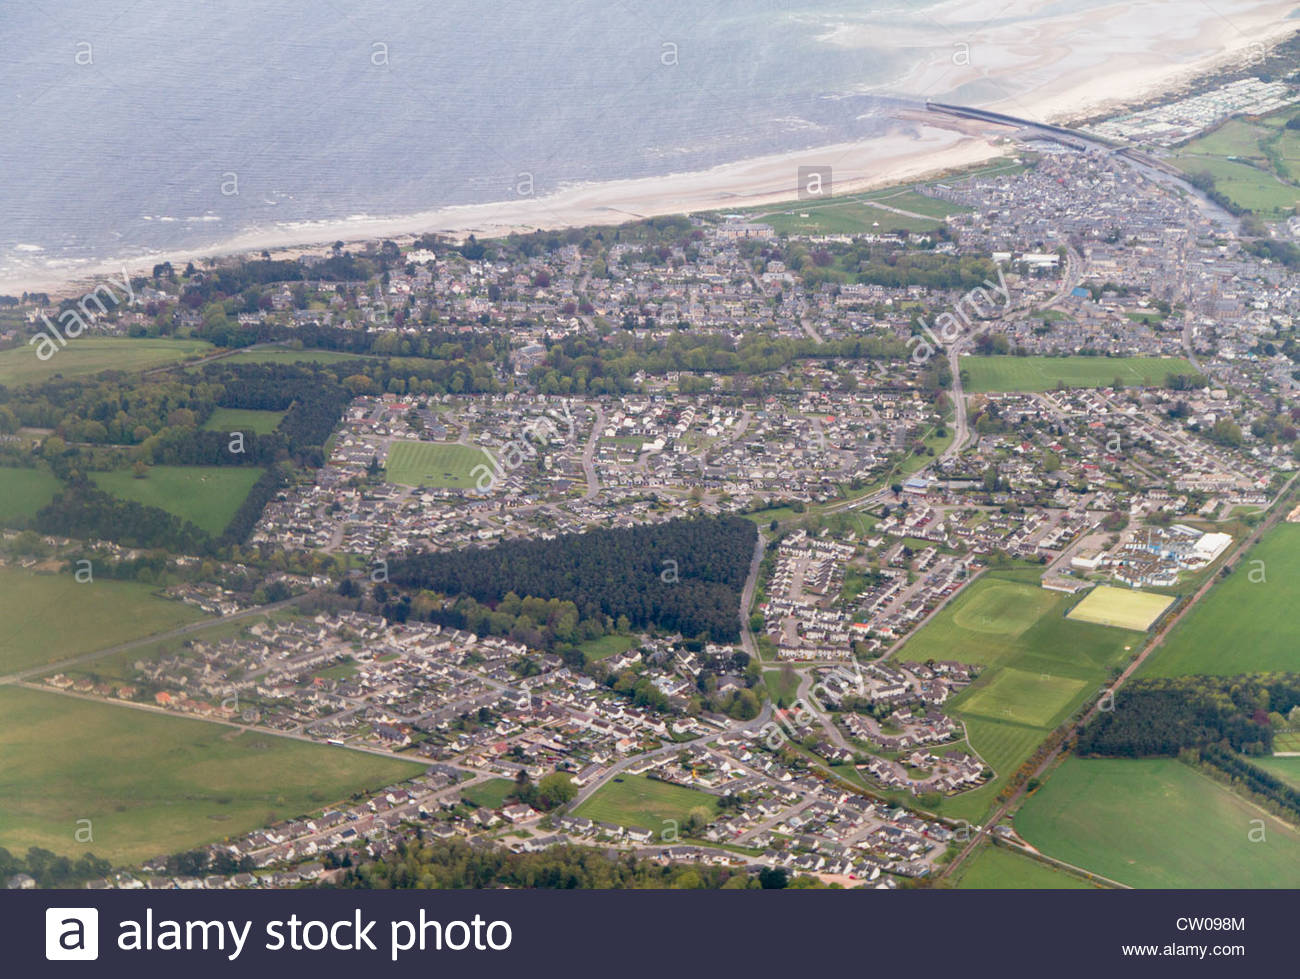 An aerial view of Nairn in Scotland. - Stock Image